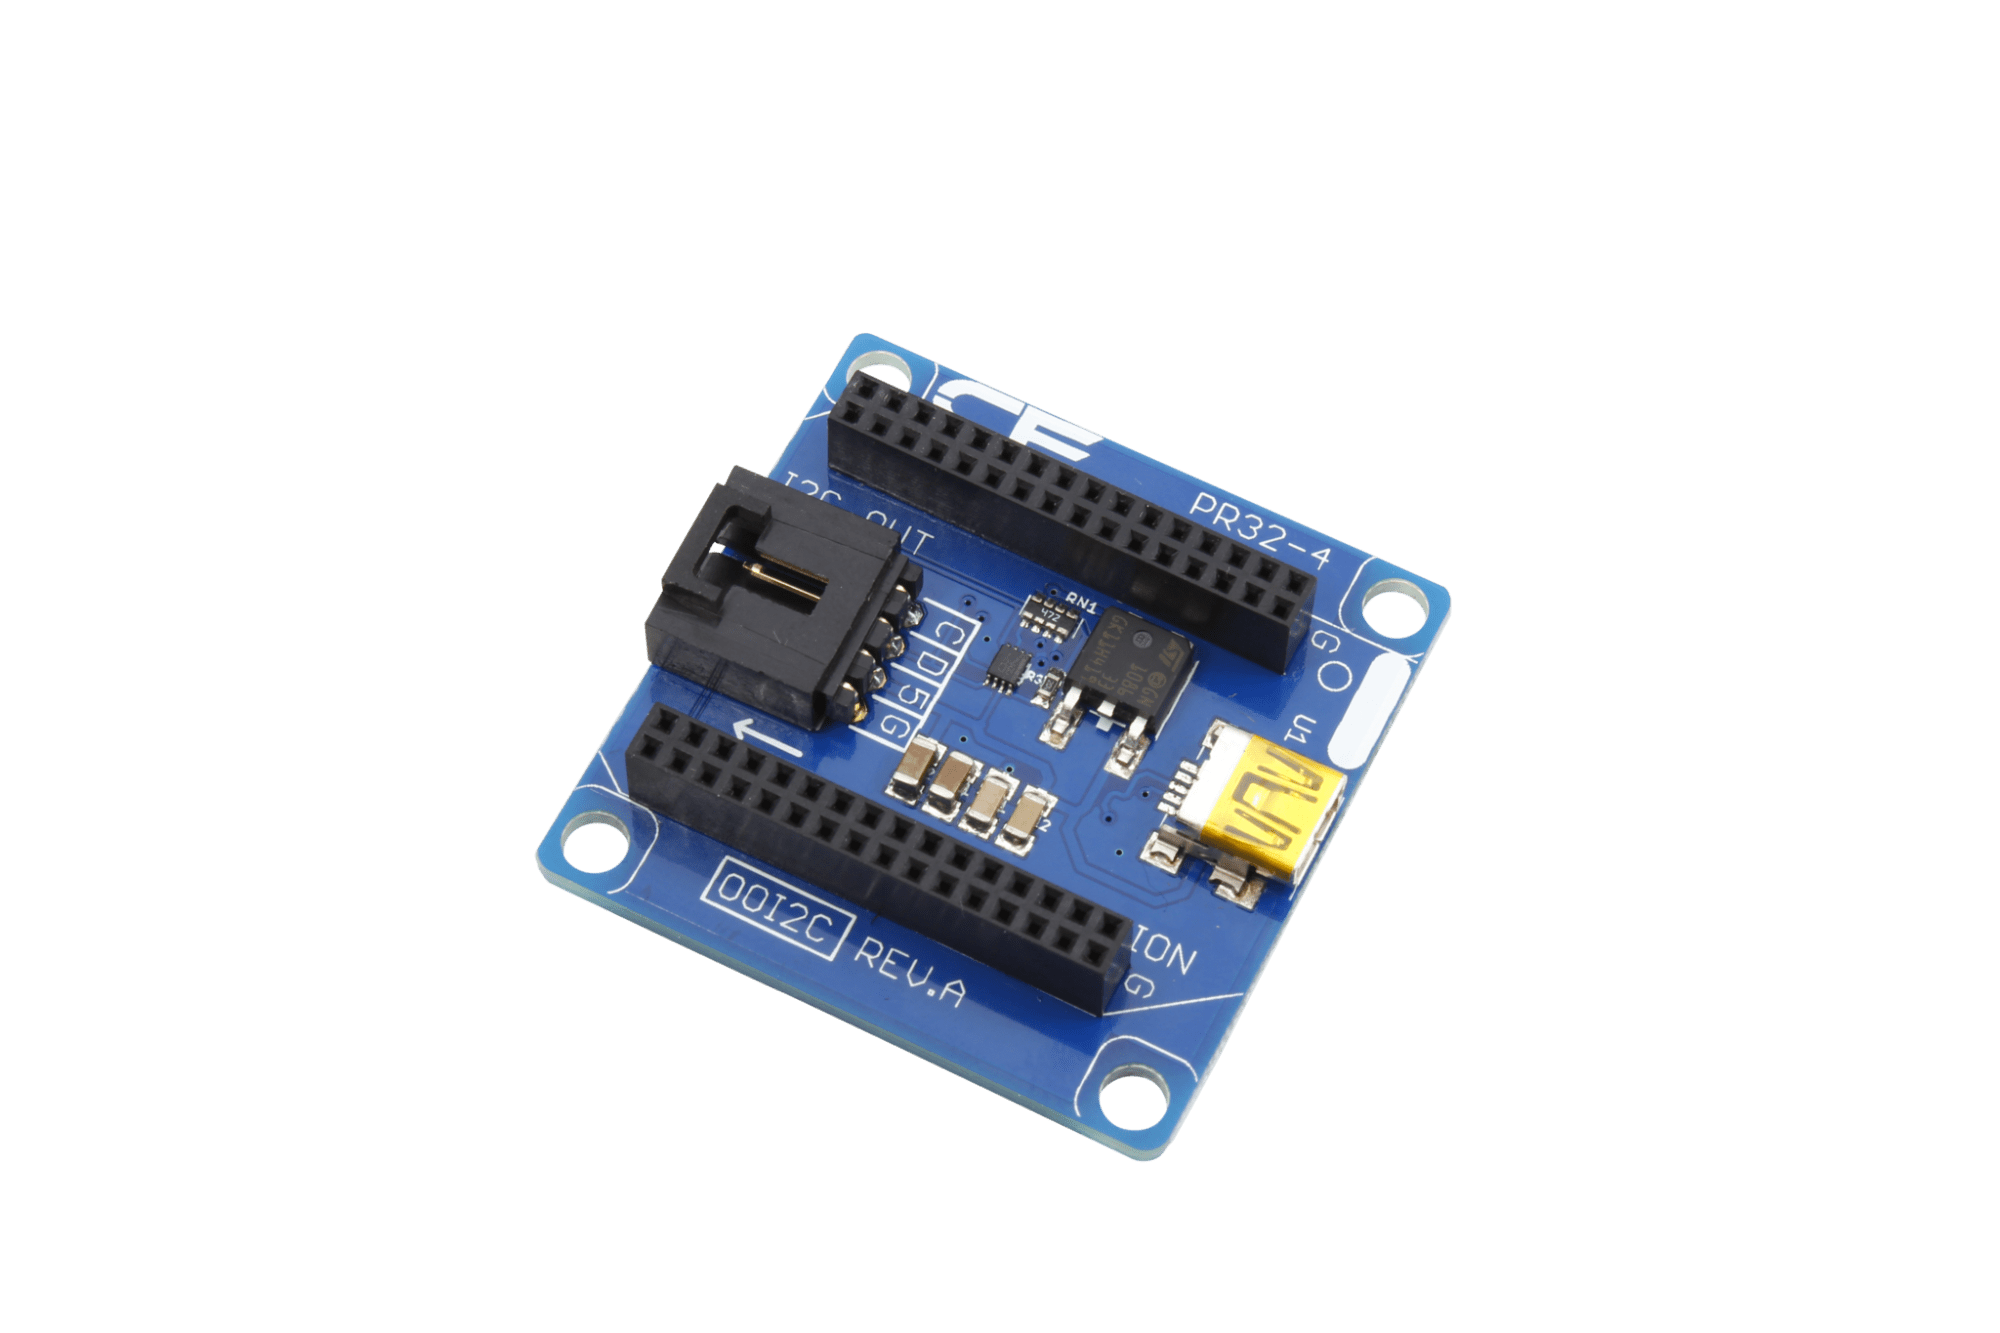 hight resolution of onion omega 2 and onion omega 1 i2c adapter with usb interface